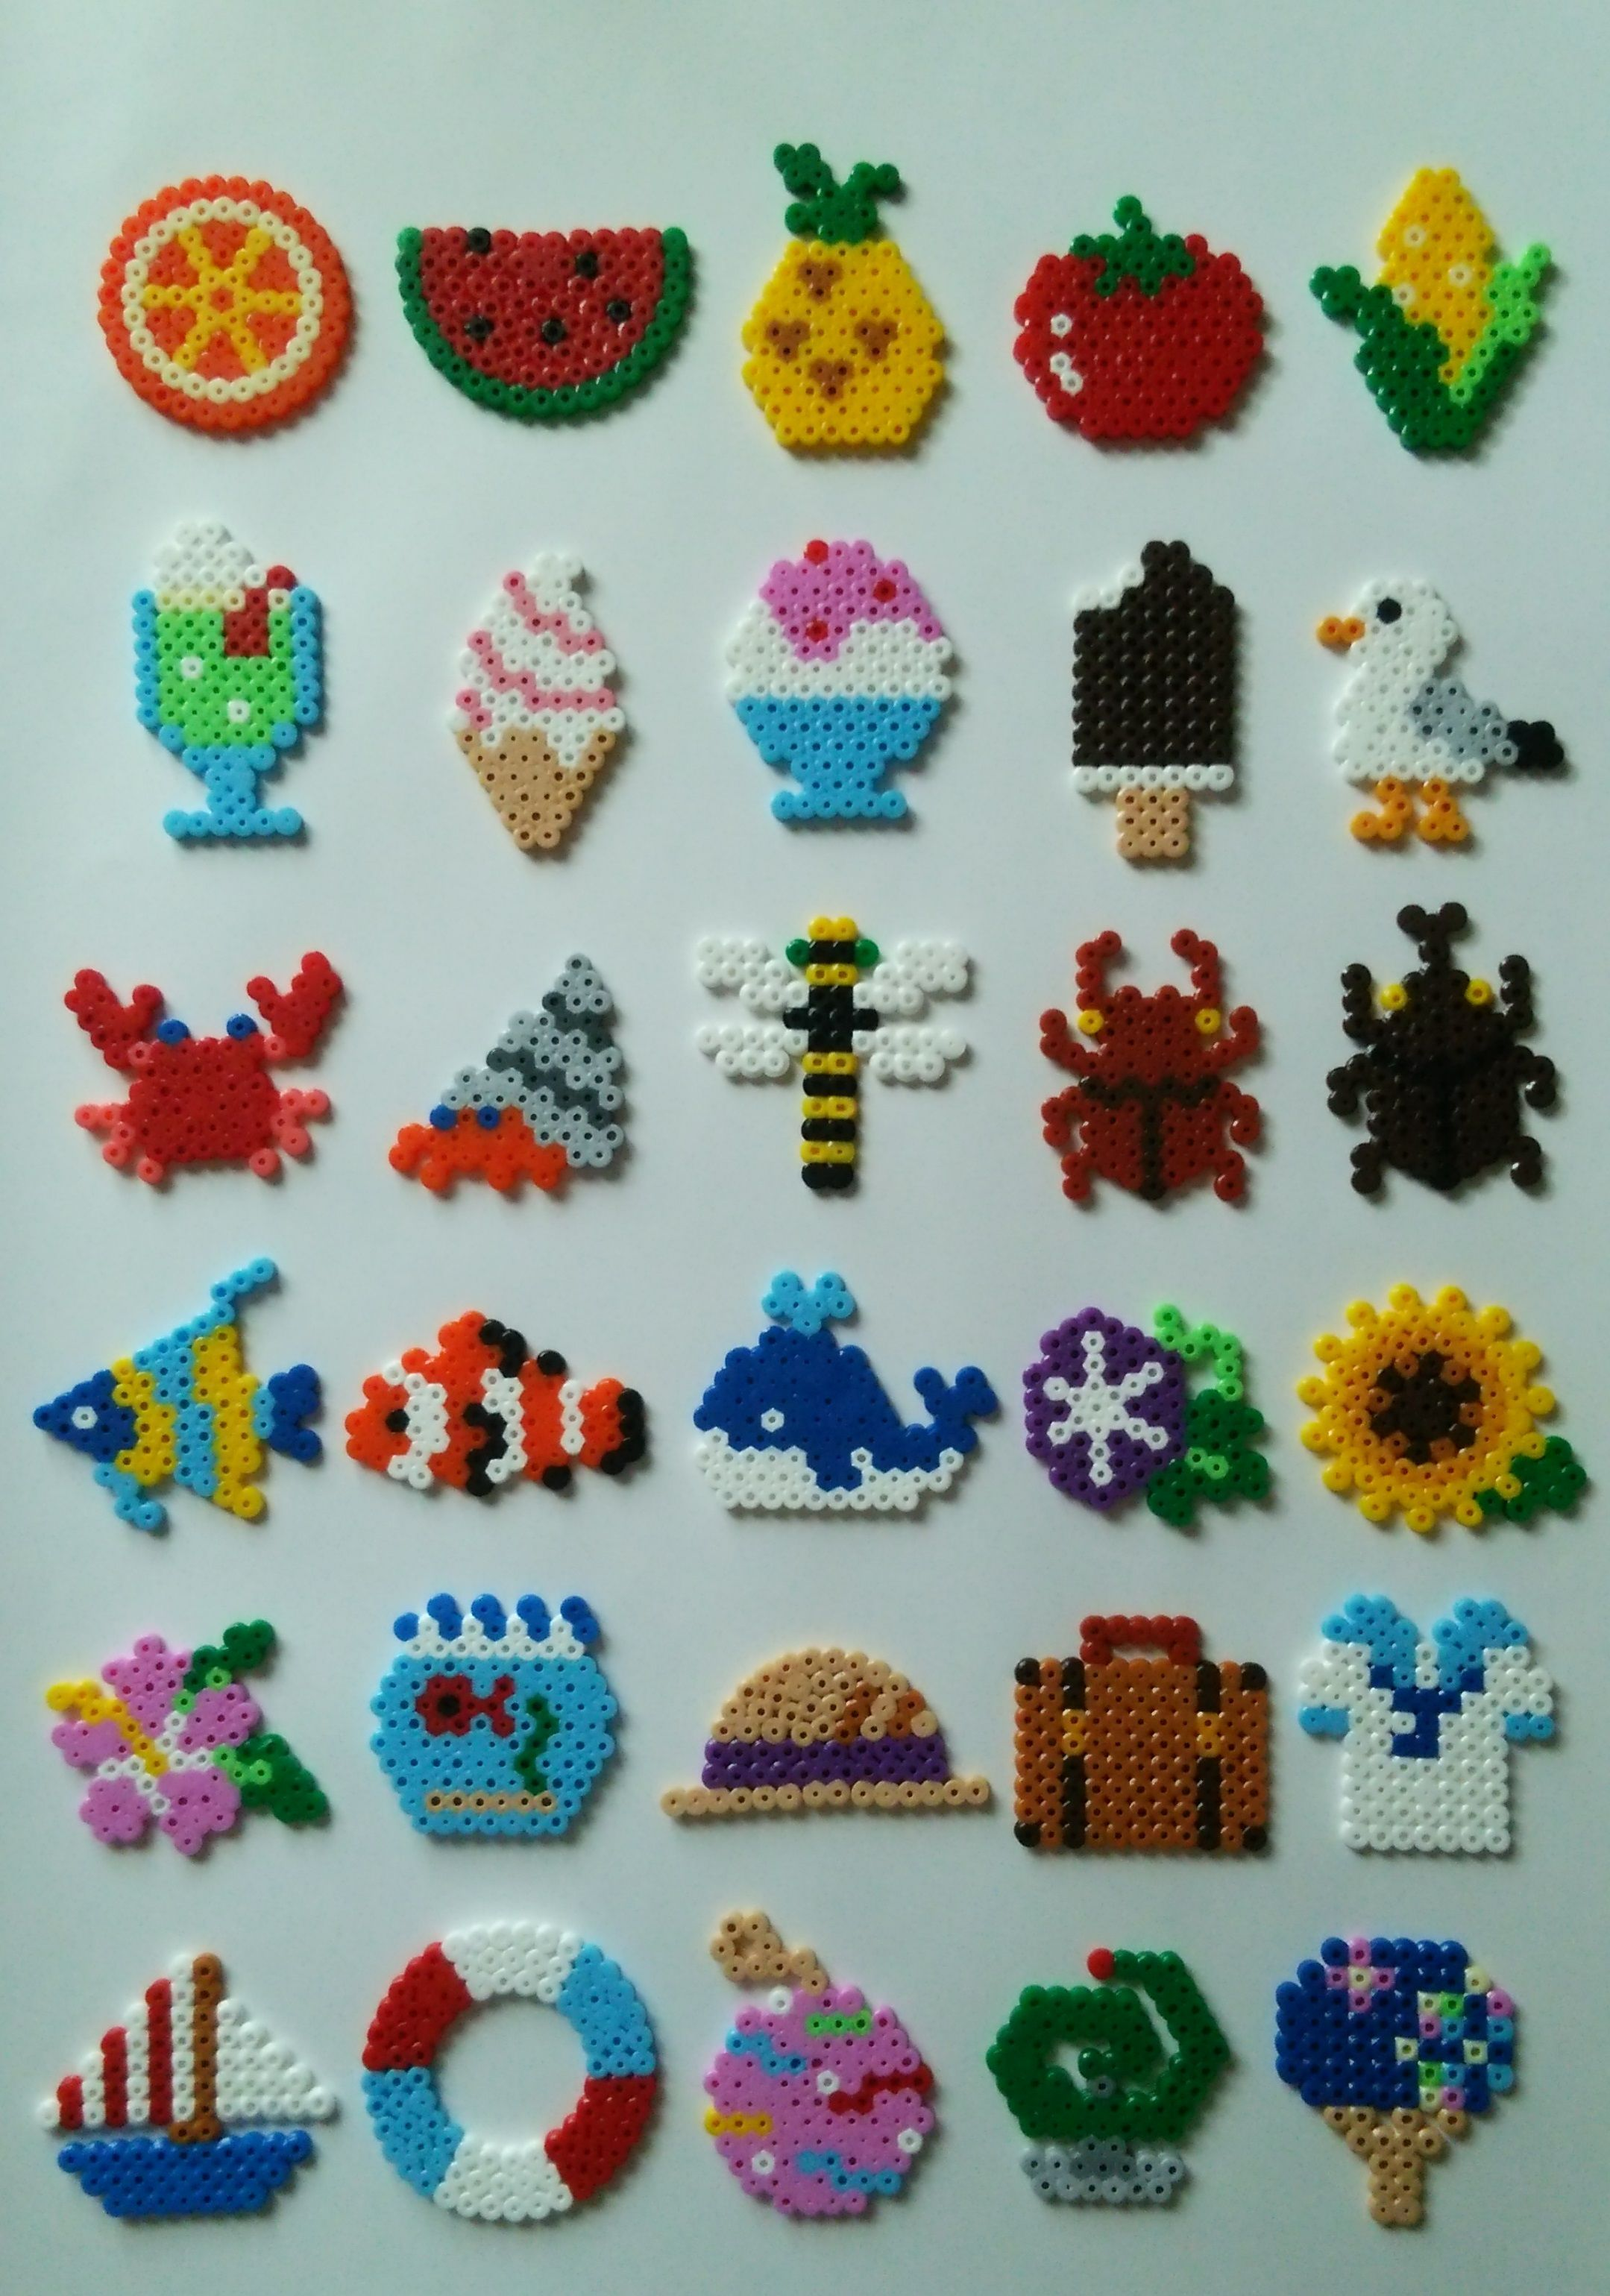 Image result for melty bead patterns for chili peppers | melty beads ...